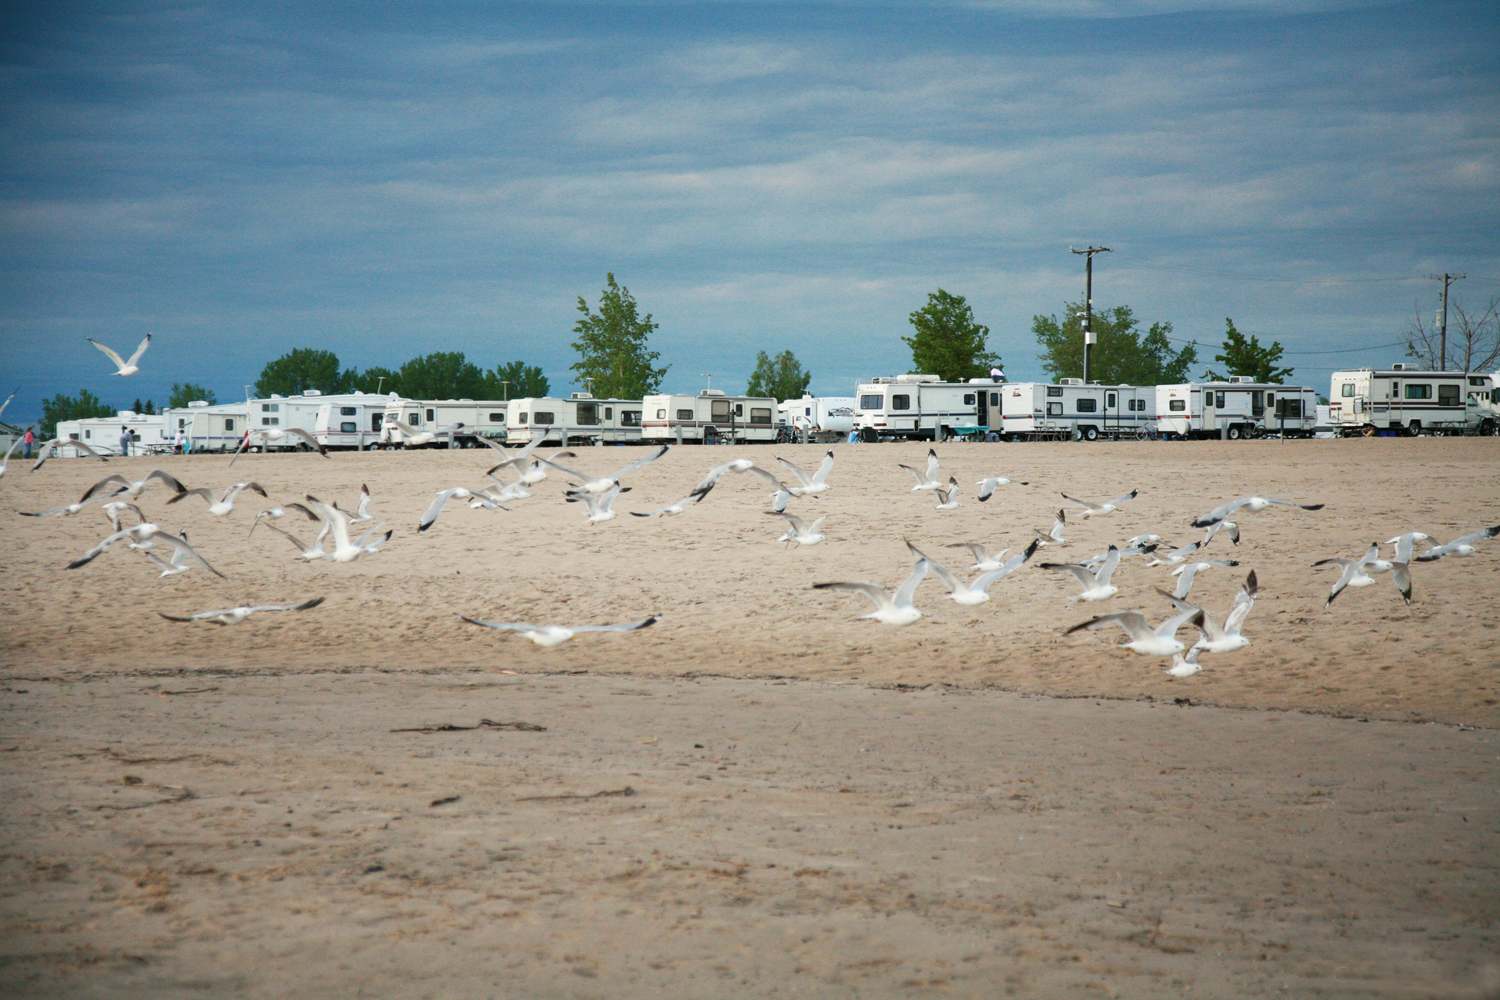 An artistic photograph of seagulls flying on the beach of lake michigan with recreational vehicle in the background